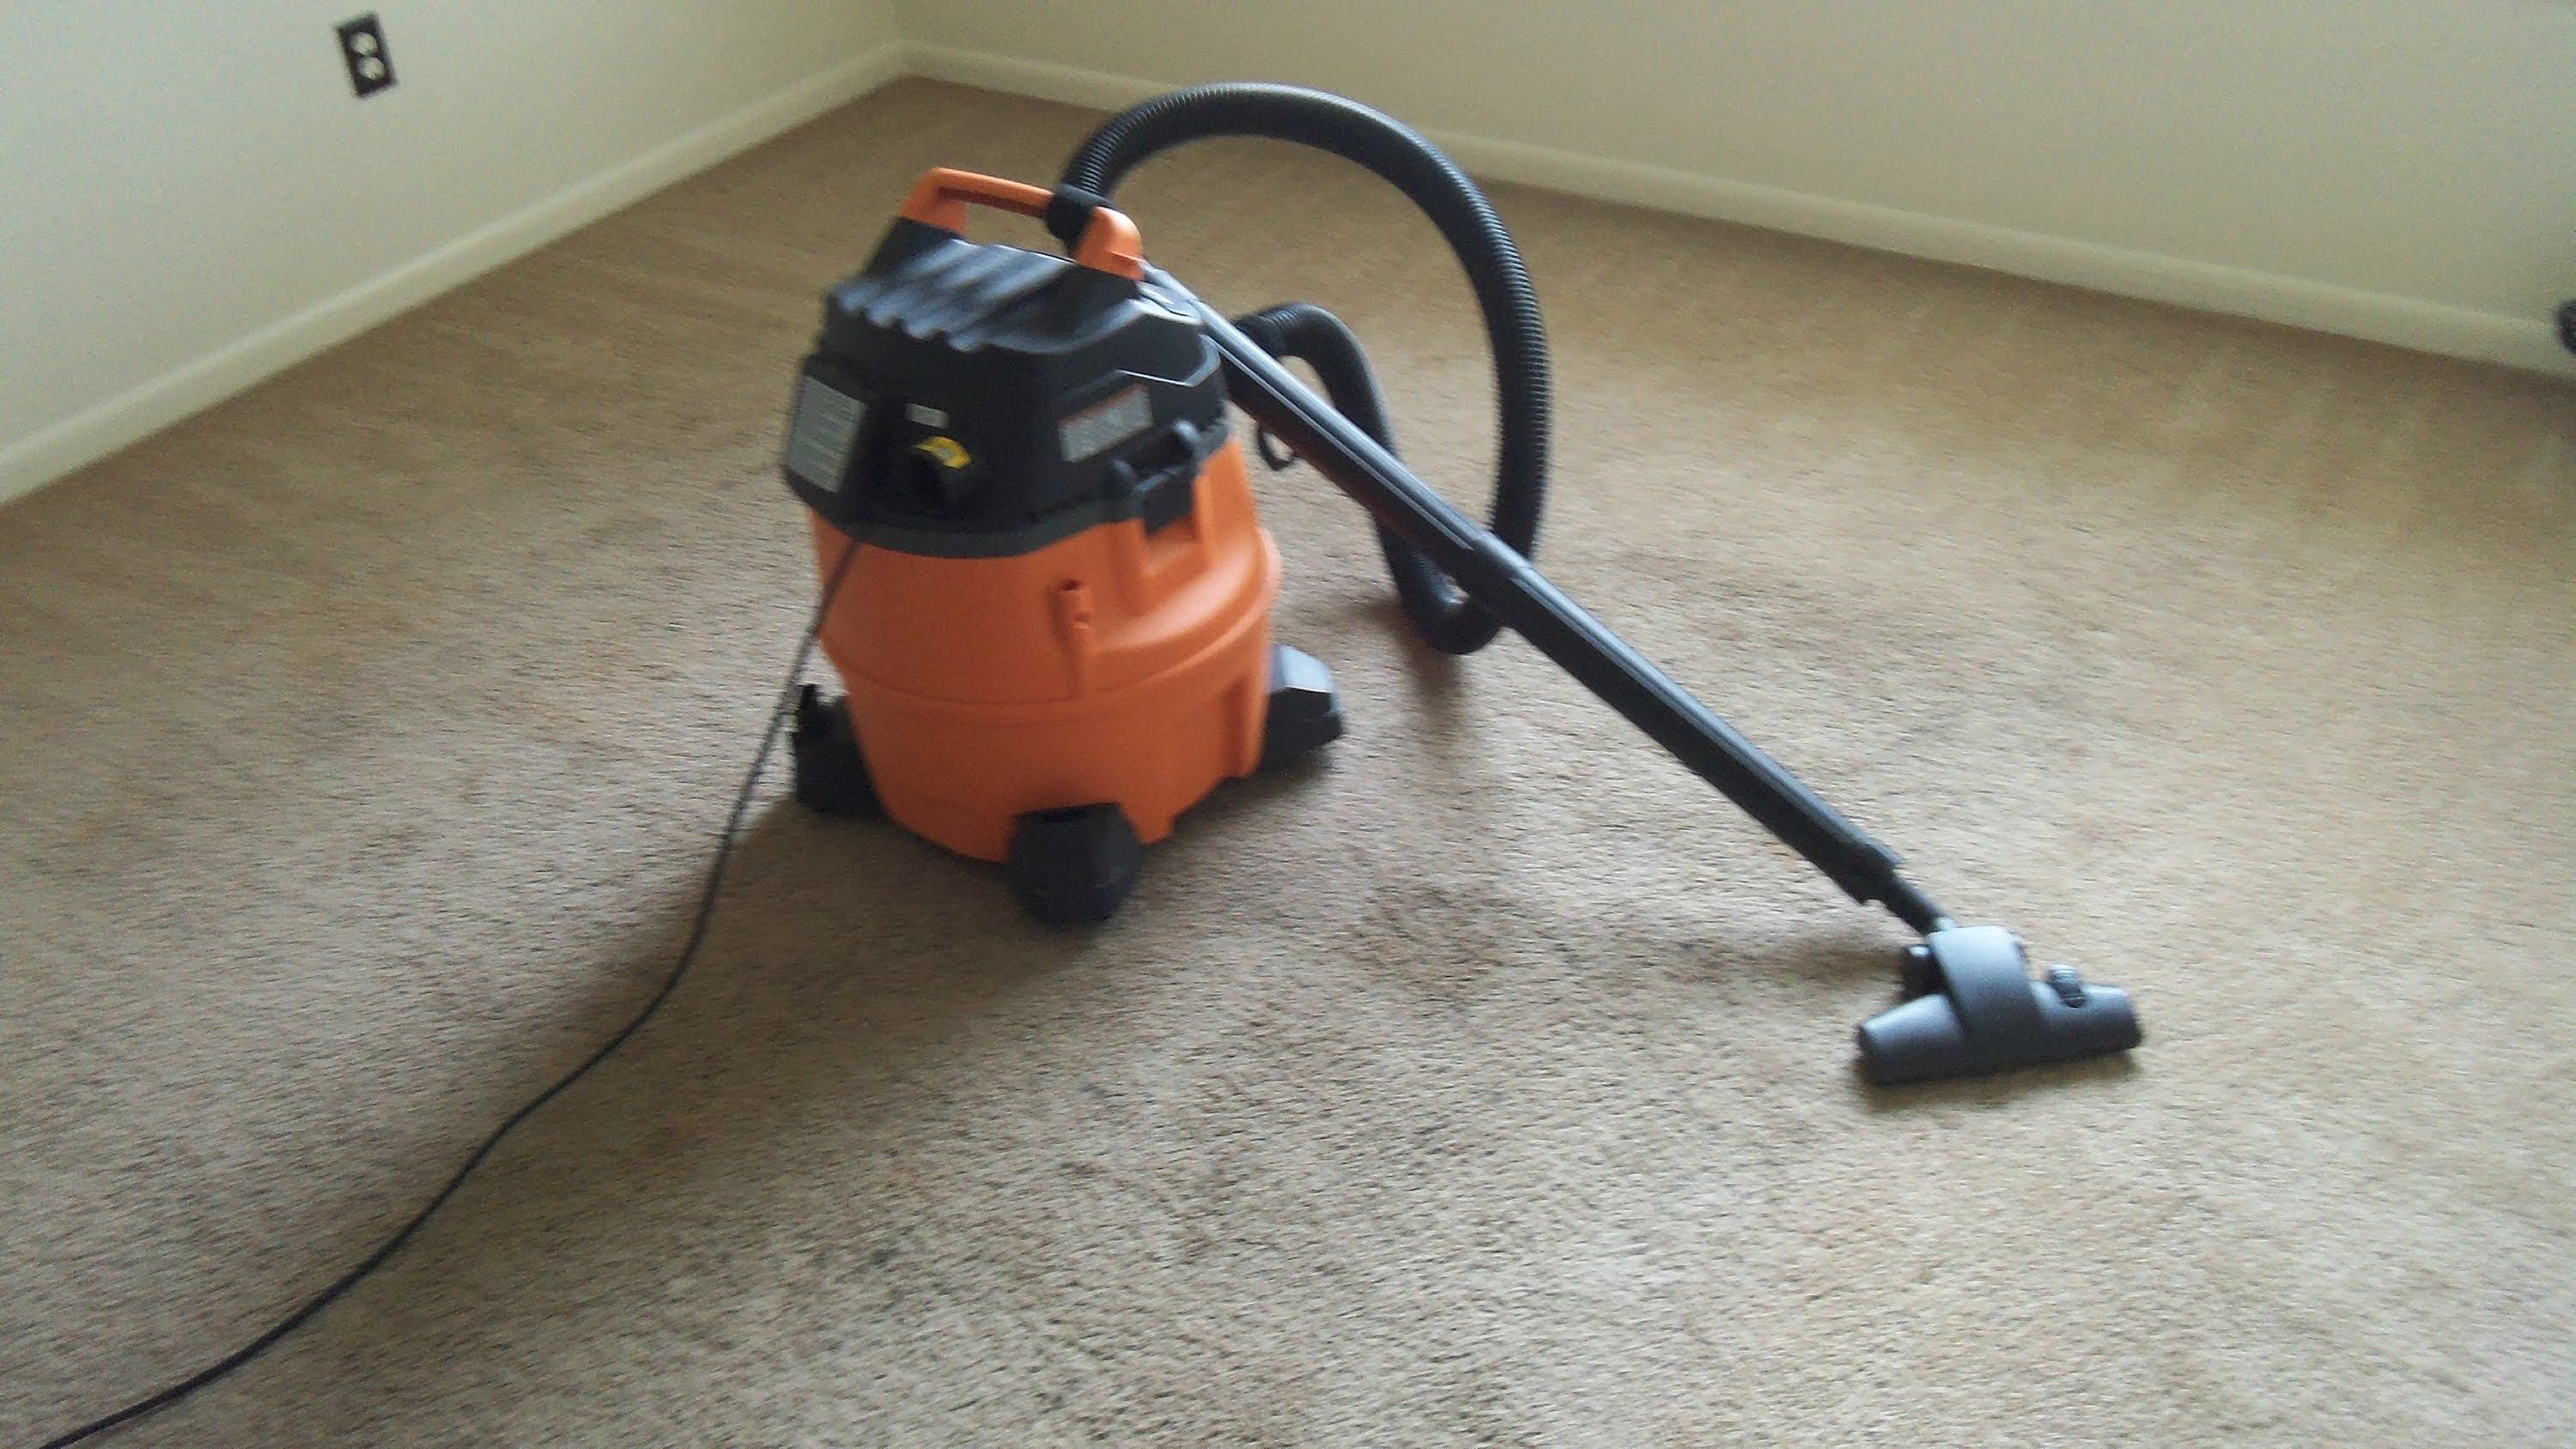 Ridgid WD1450 Wet/Dry Vac and Carpet and Hard Floor Nozzle